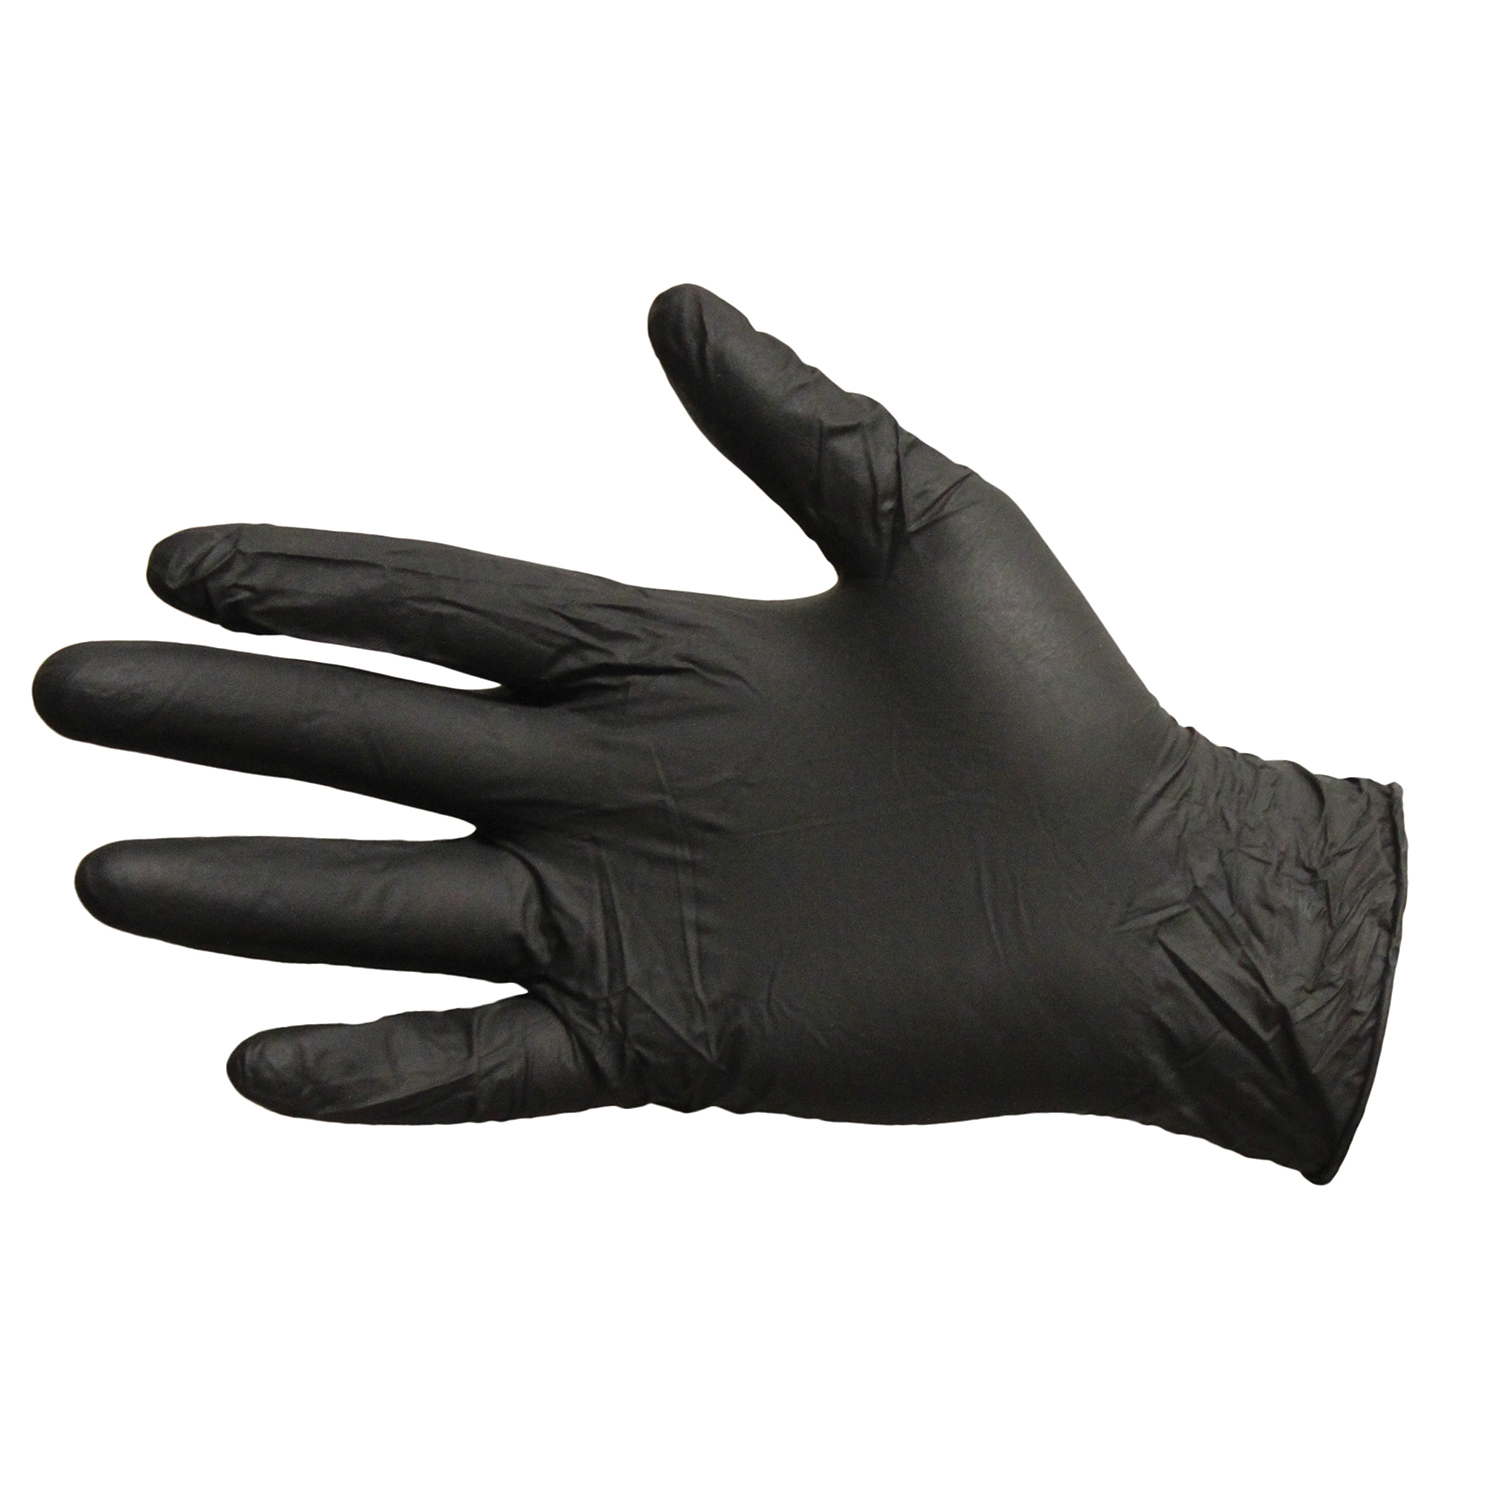 Impact Products 8642L disposable gloves